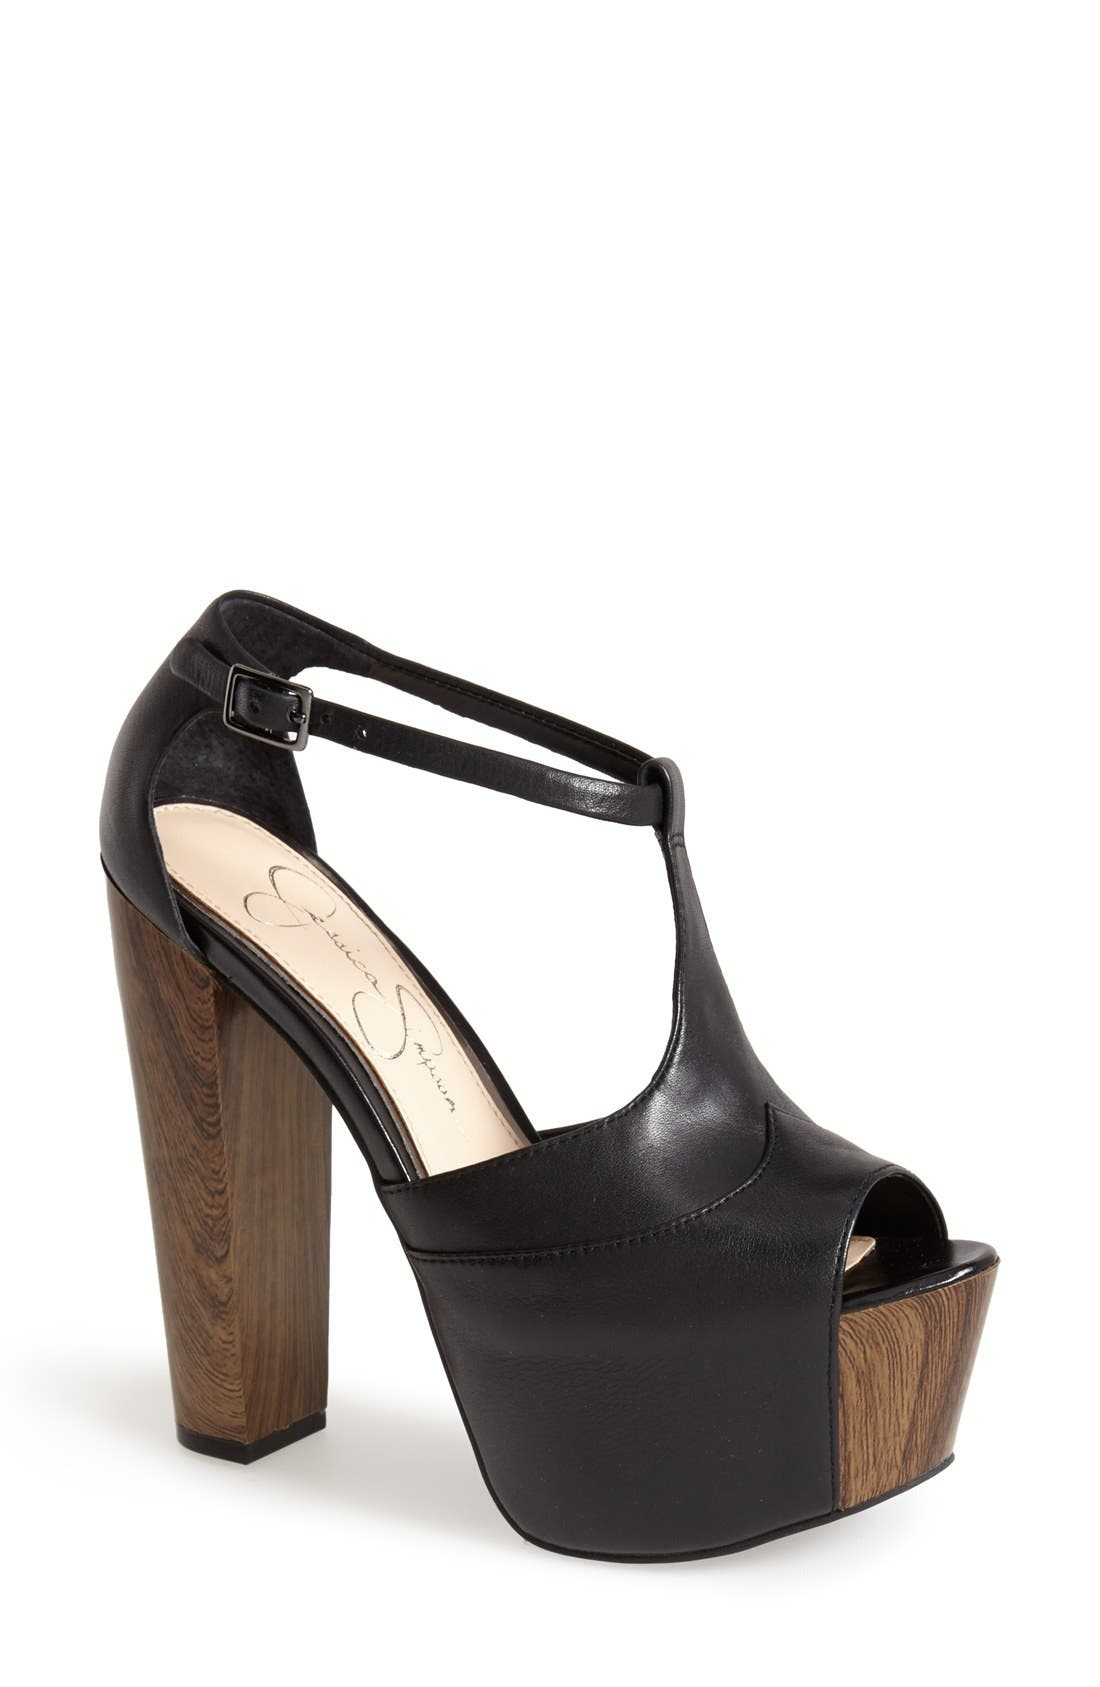 Alternate Image 1 Selected - Jessica Simpson 'Dany' Sandal